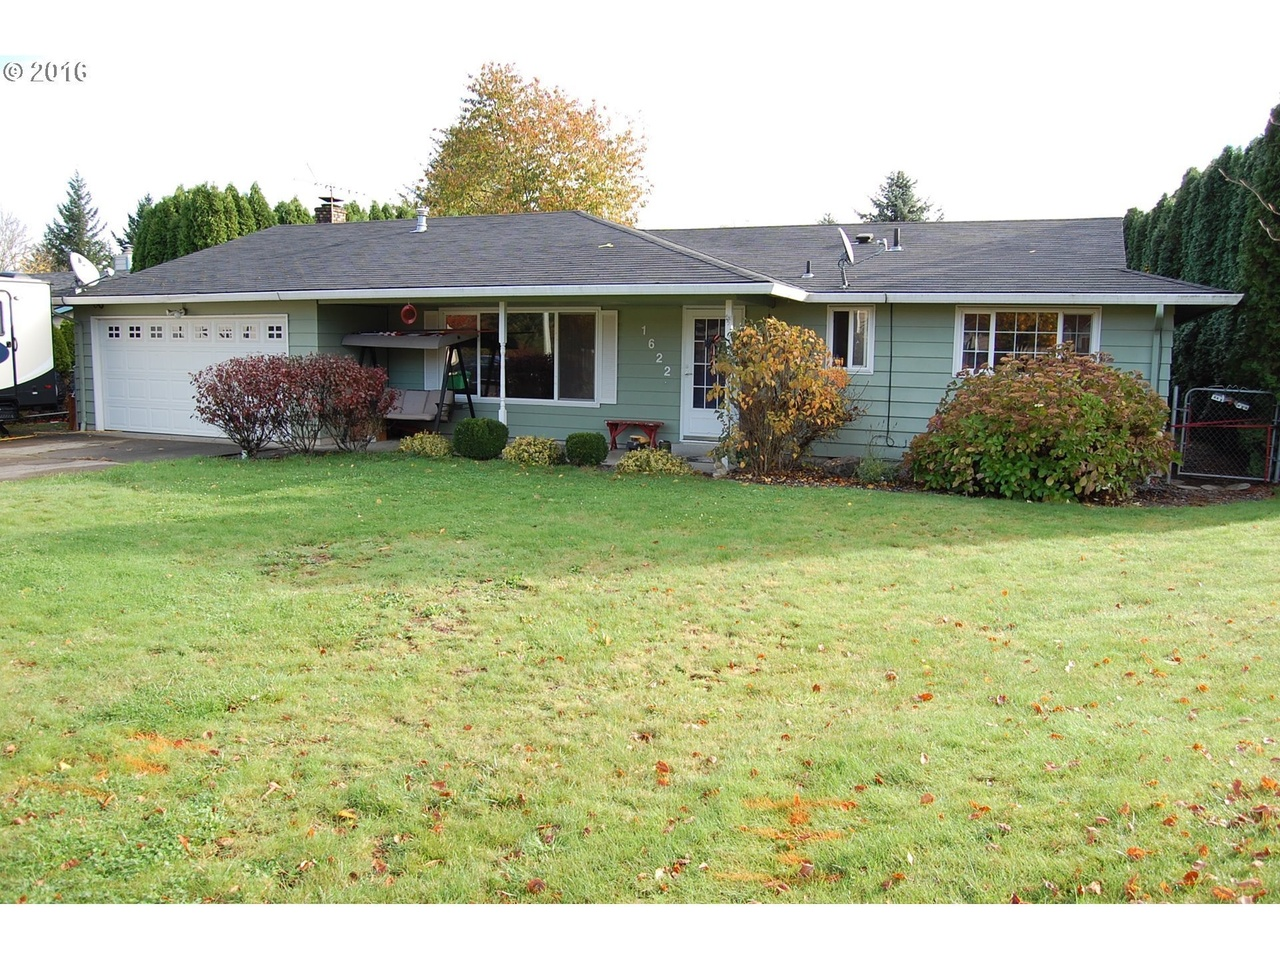 1622 Sw Hensley Rd Troutdale Or 97060 Mls 16365541